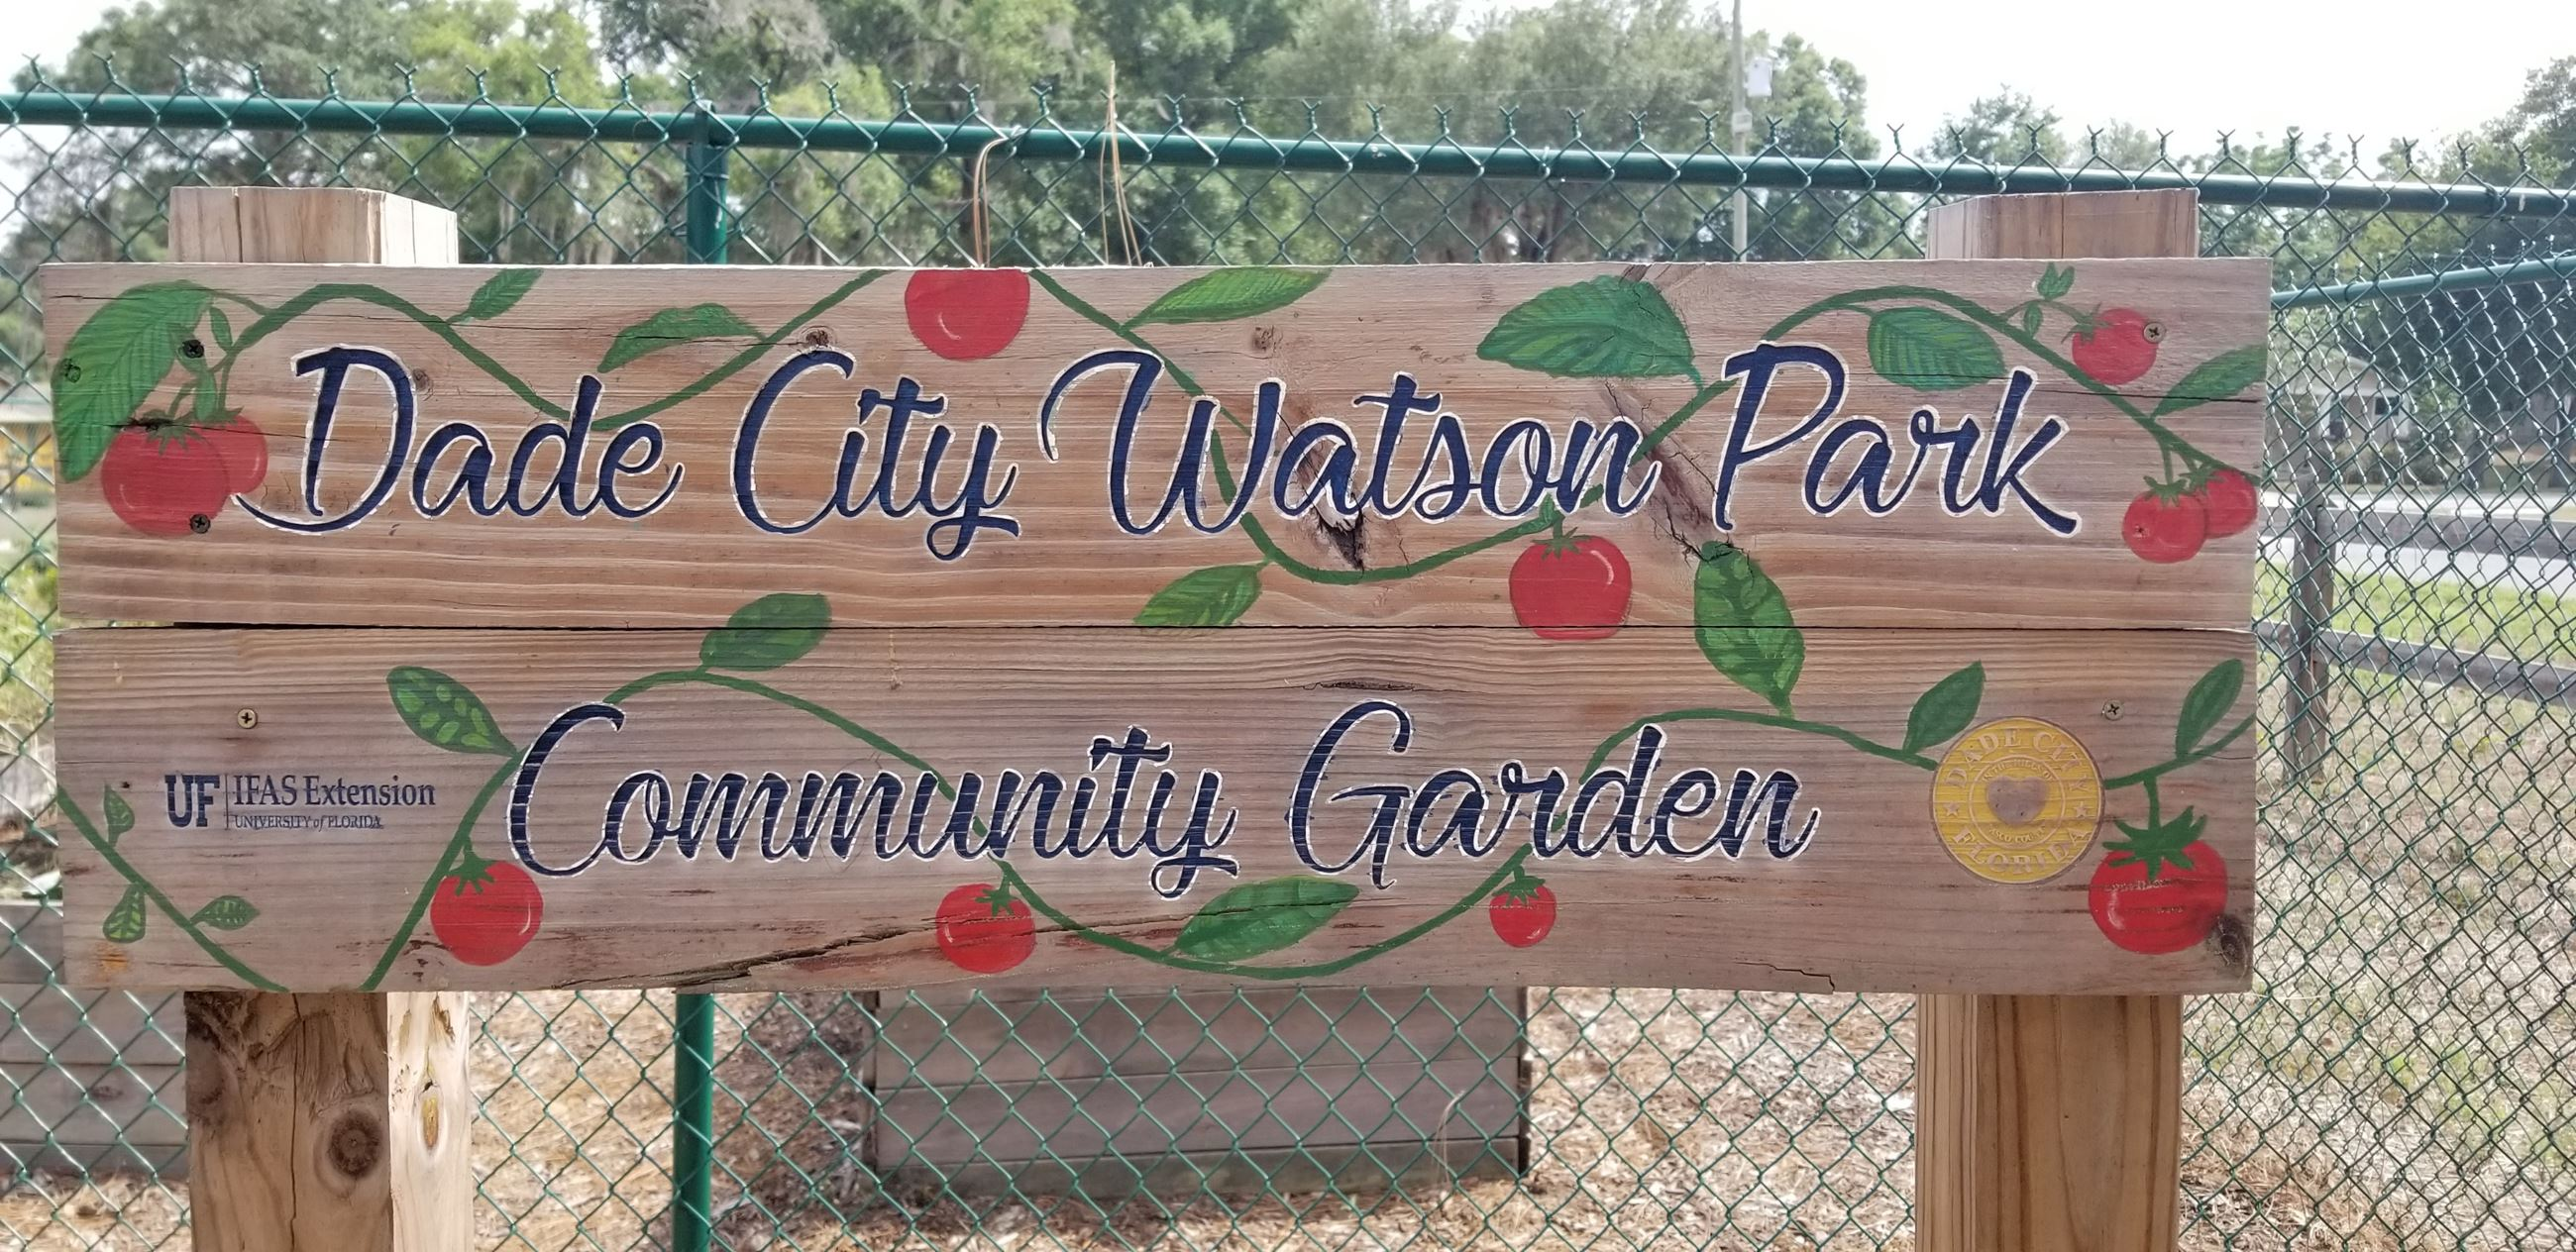 Dade City Watson Park Wooden Sign